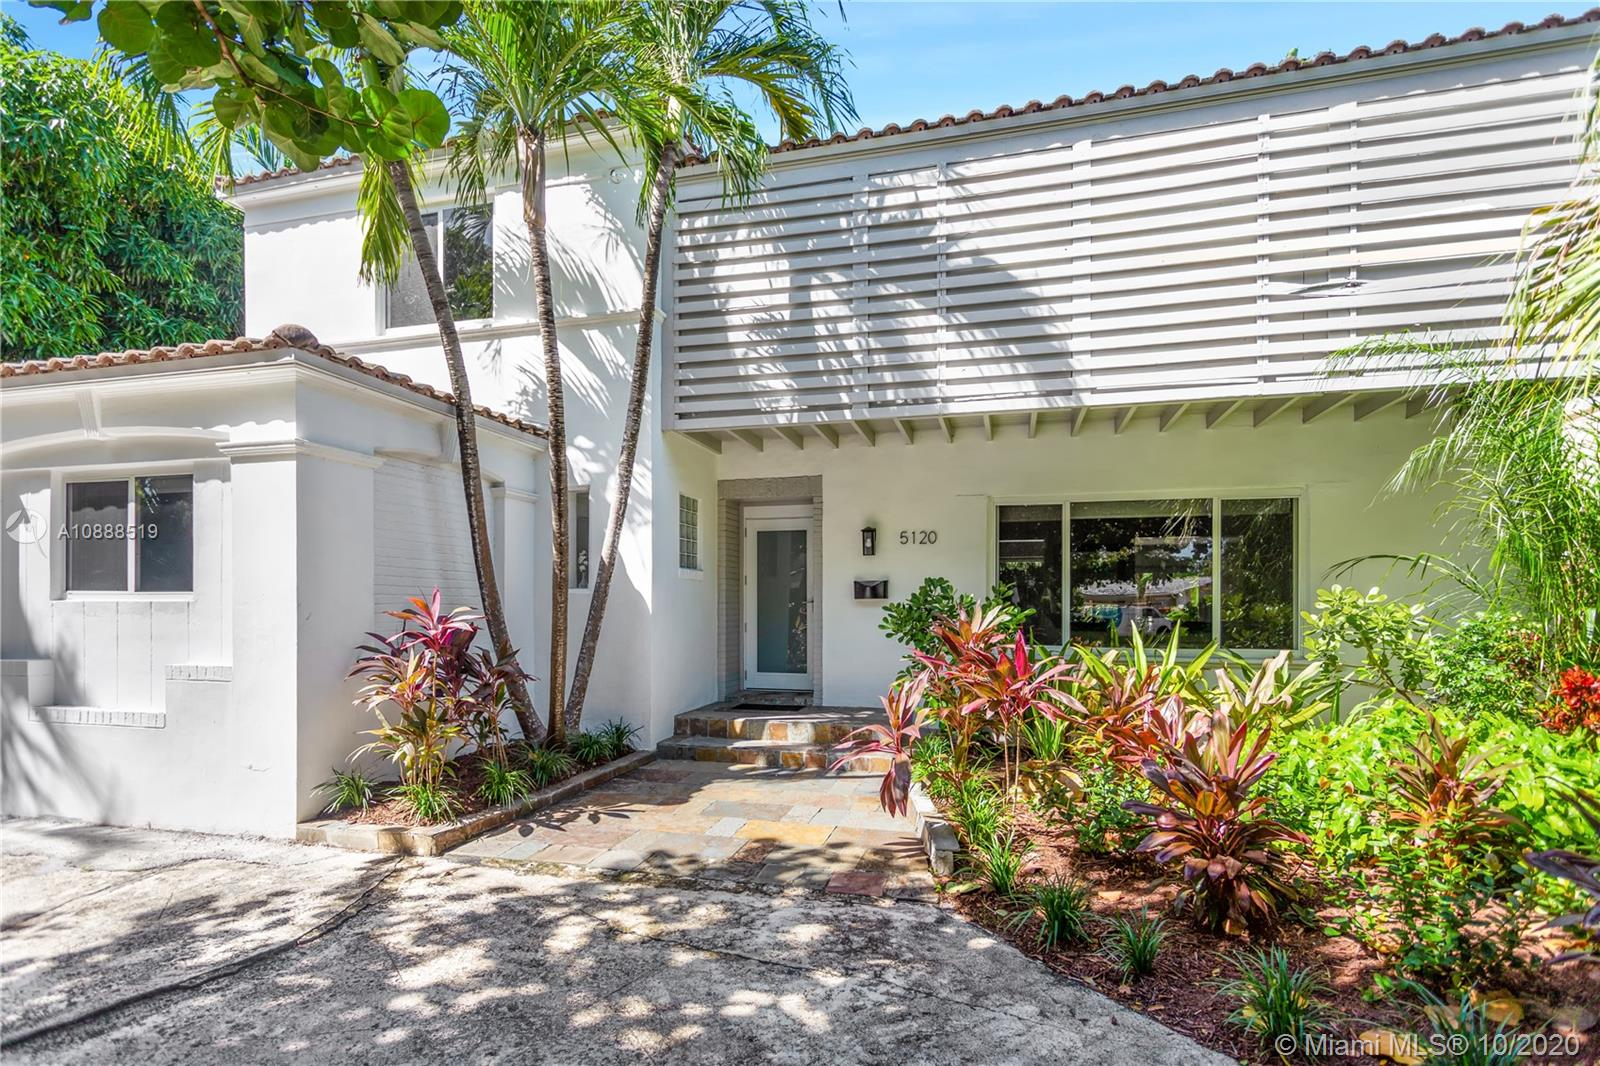 Beautiful and cozy home 4 Beds 3.5 Baths SEASONAL RENTAL ONLY in Miami Beach at higher rate. Fully Furnished and Totally renovated, brand new kitchen and stainless steel appliances, new bathrooms with Italian cabinetry, new wood floors all throughout and more. Open floor plan, two level home with a pool and outdoor area. New impact doors and windows. Excellent location in Miami Beach neighborhood and ready to move in. Easy to show. Must see!!!